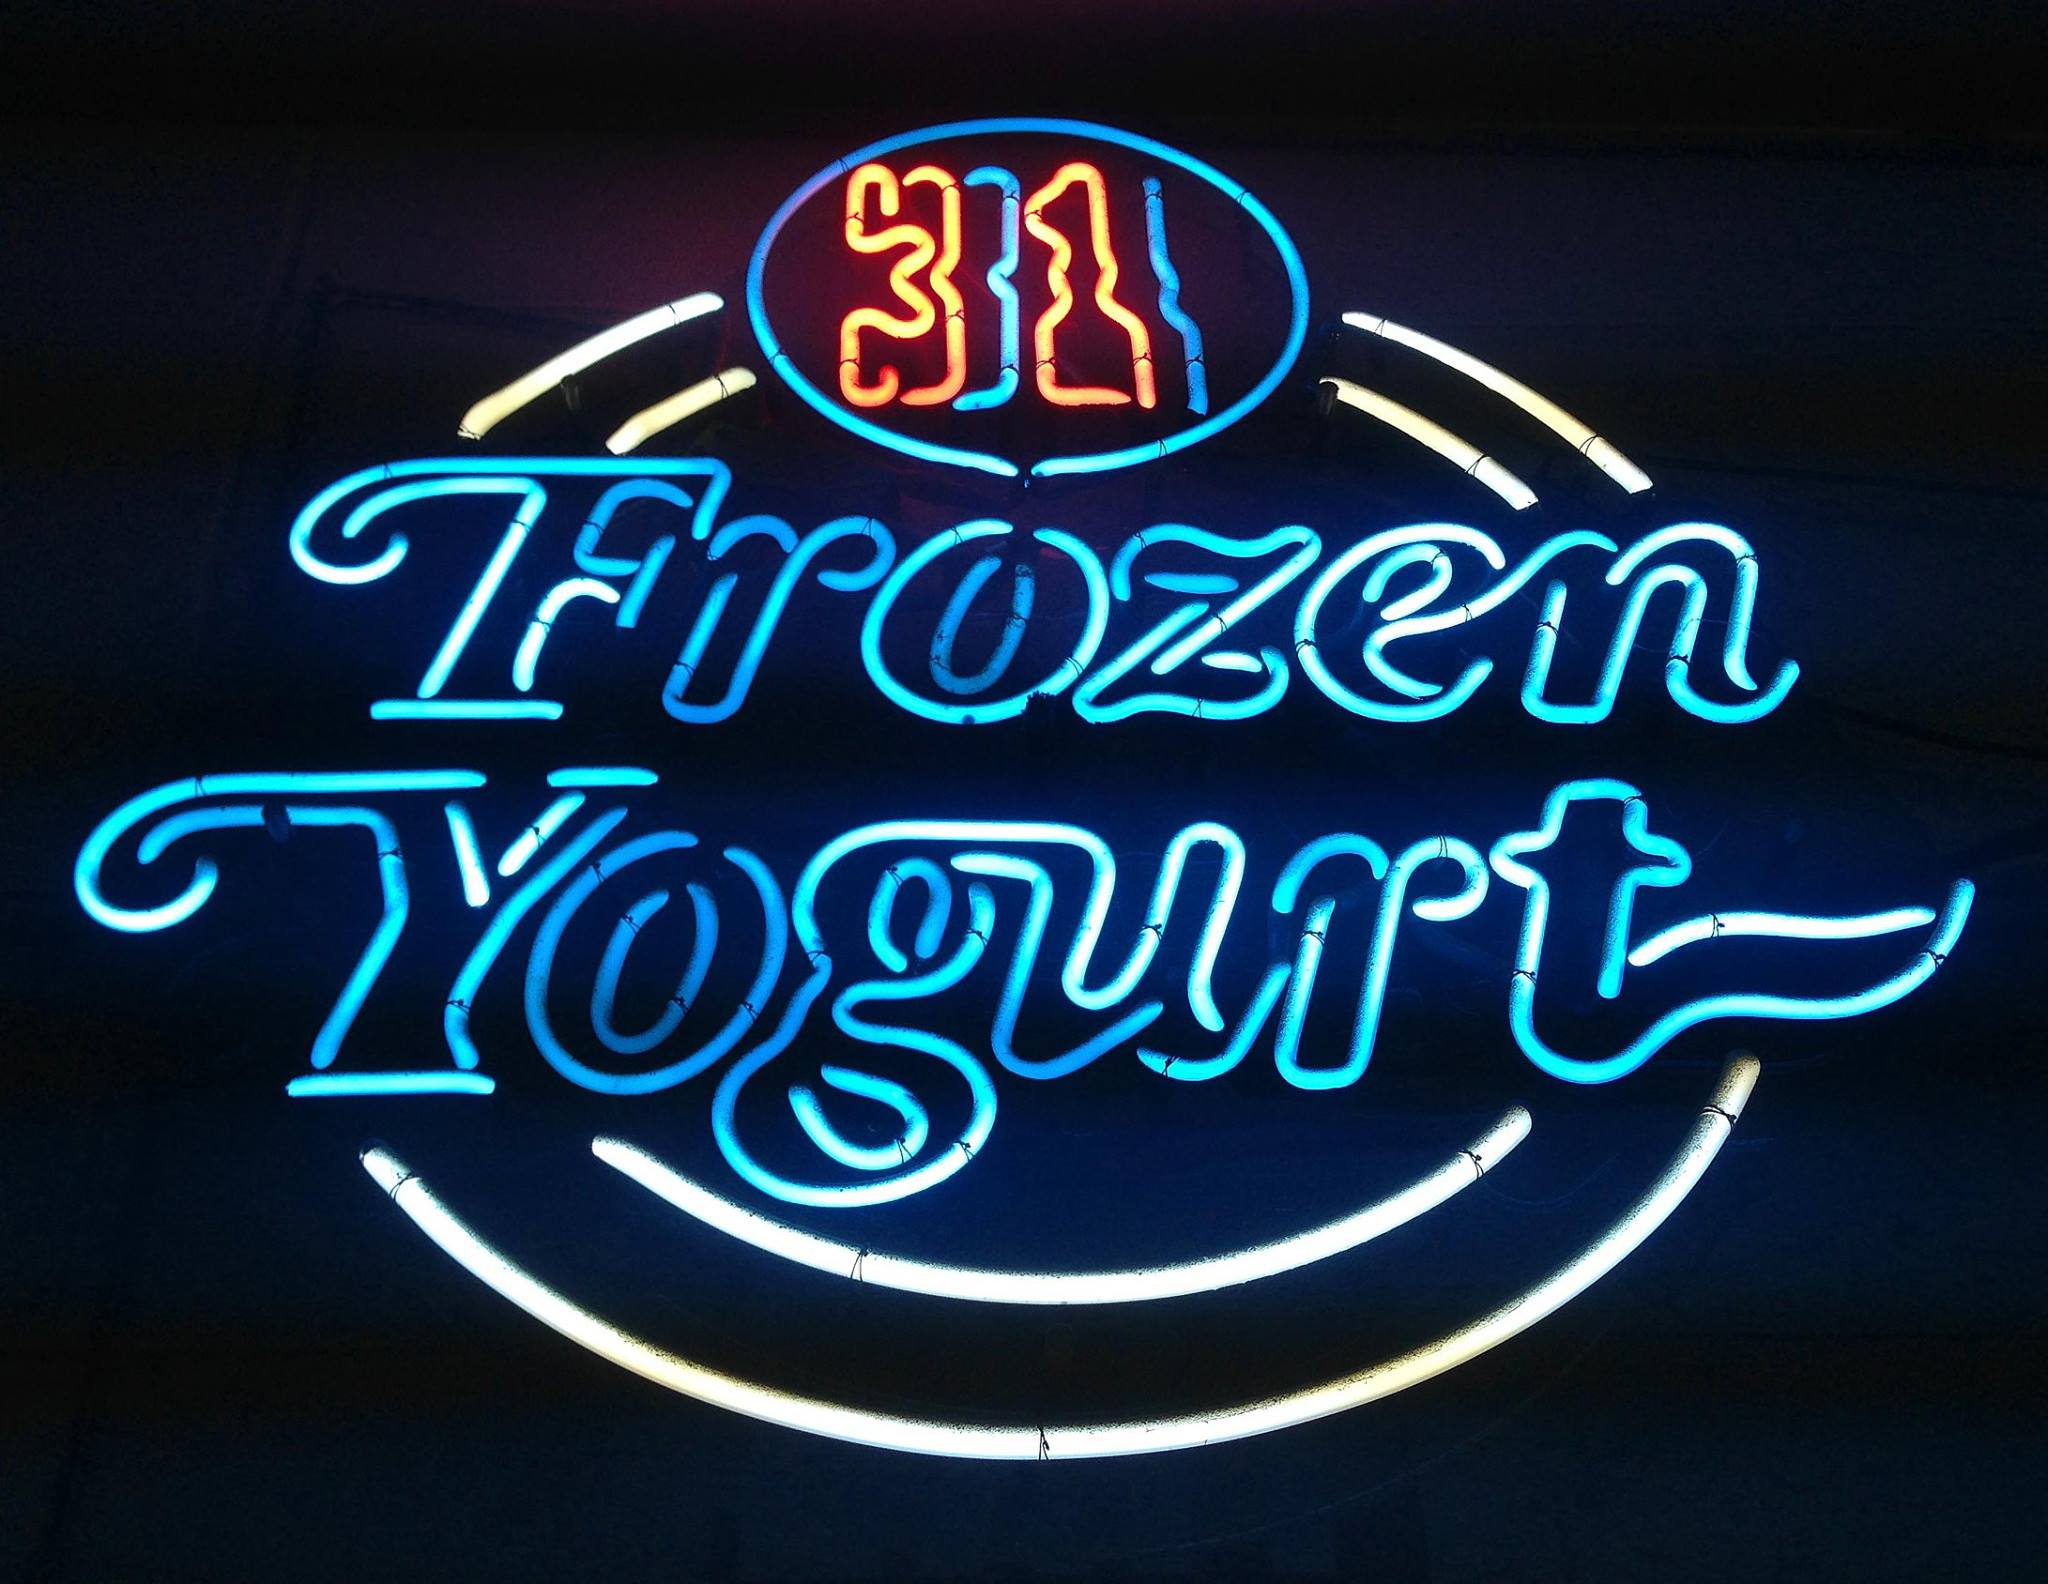 Frozen Yogurt white and blue neon sign against black background